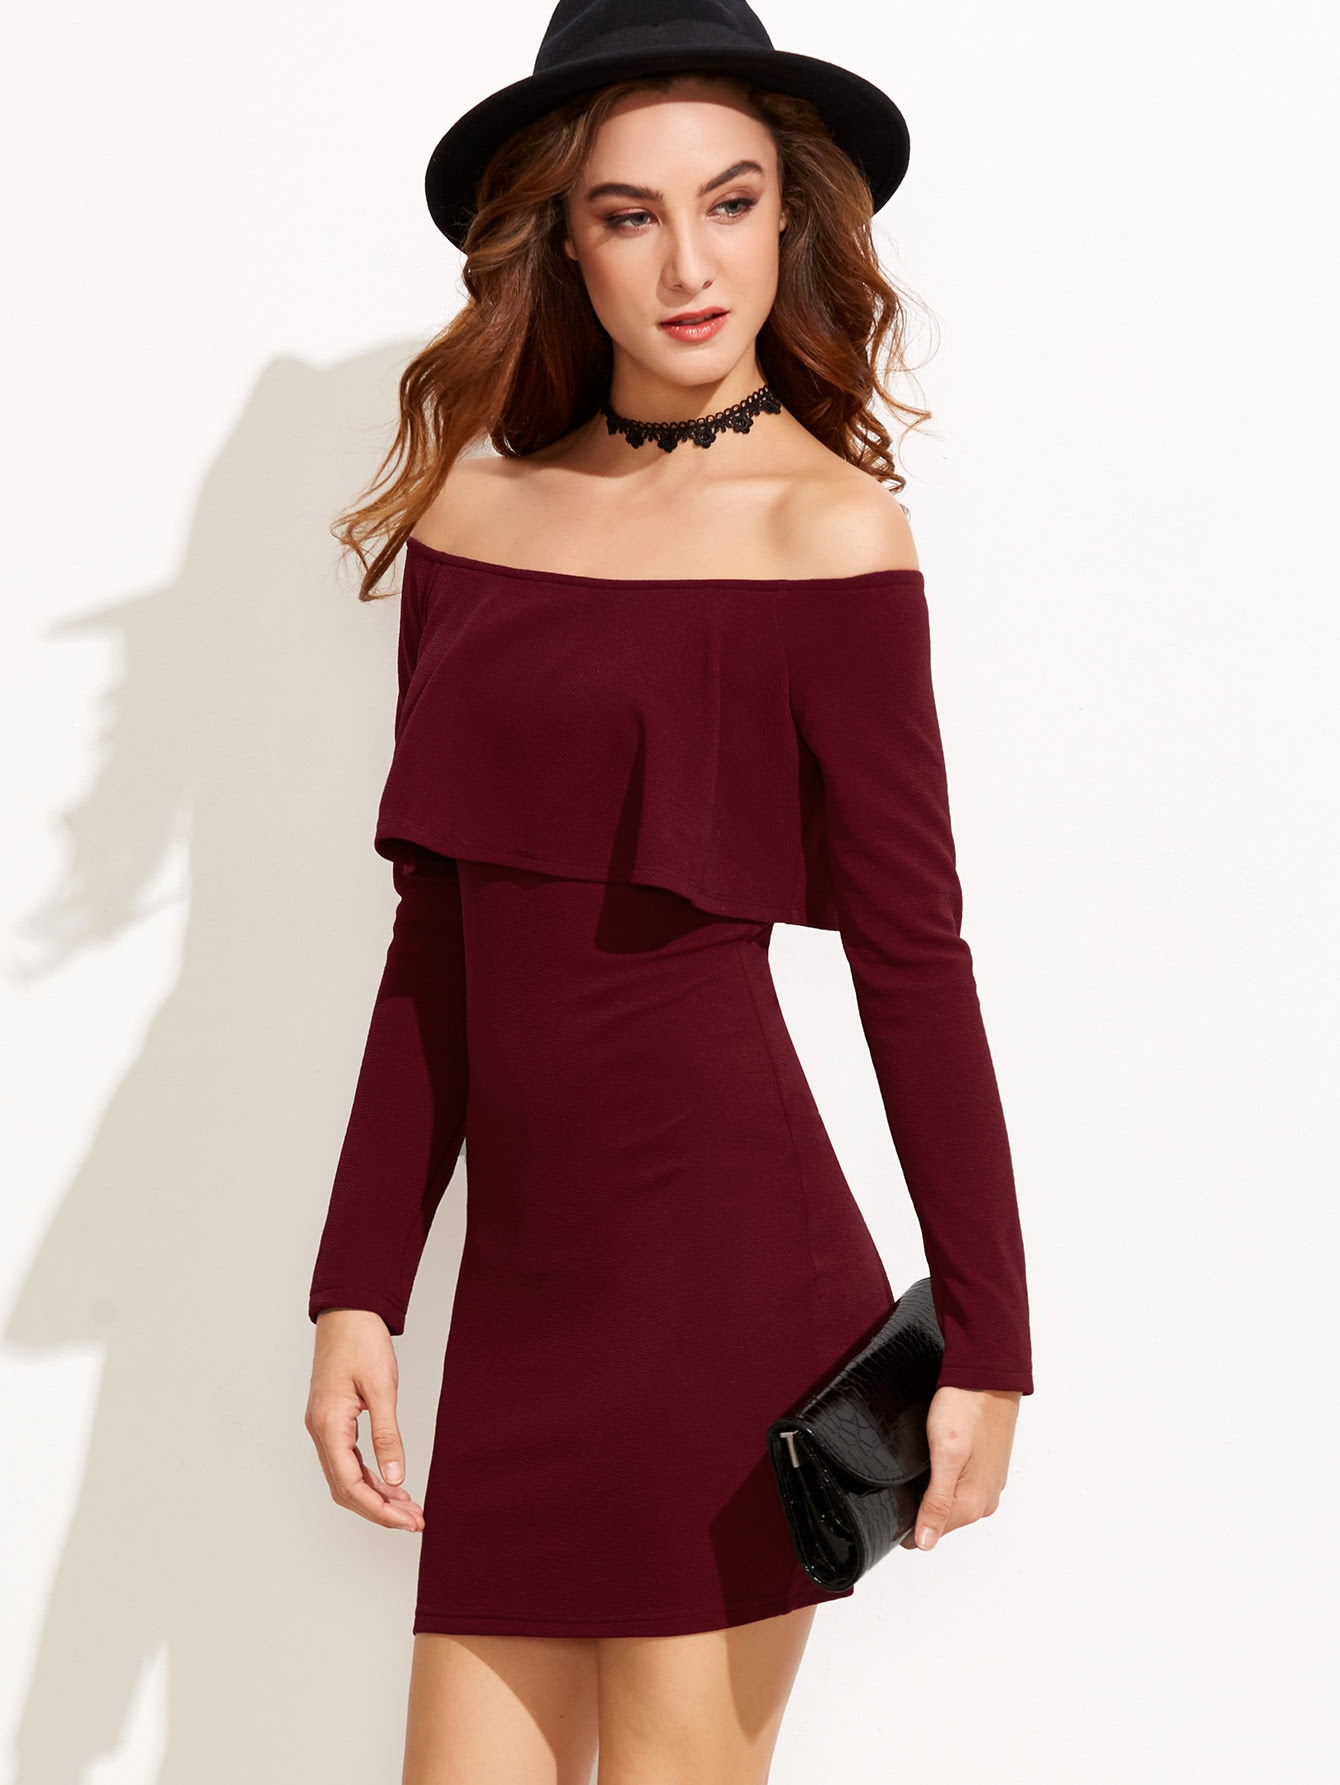 Up fabric dress bodycon ruffle with bottom brands